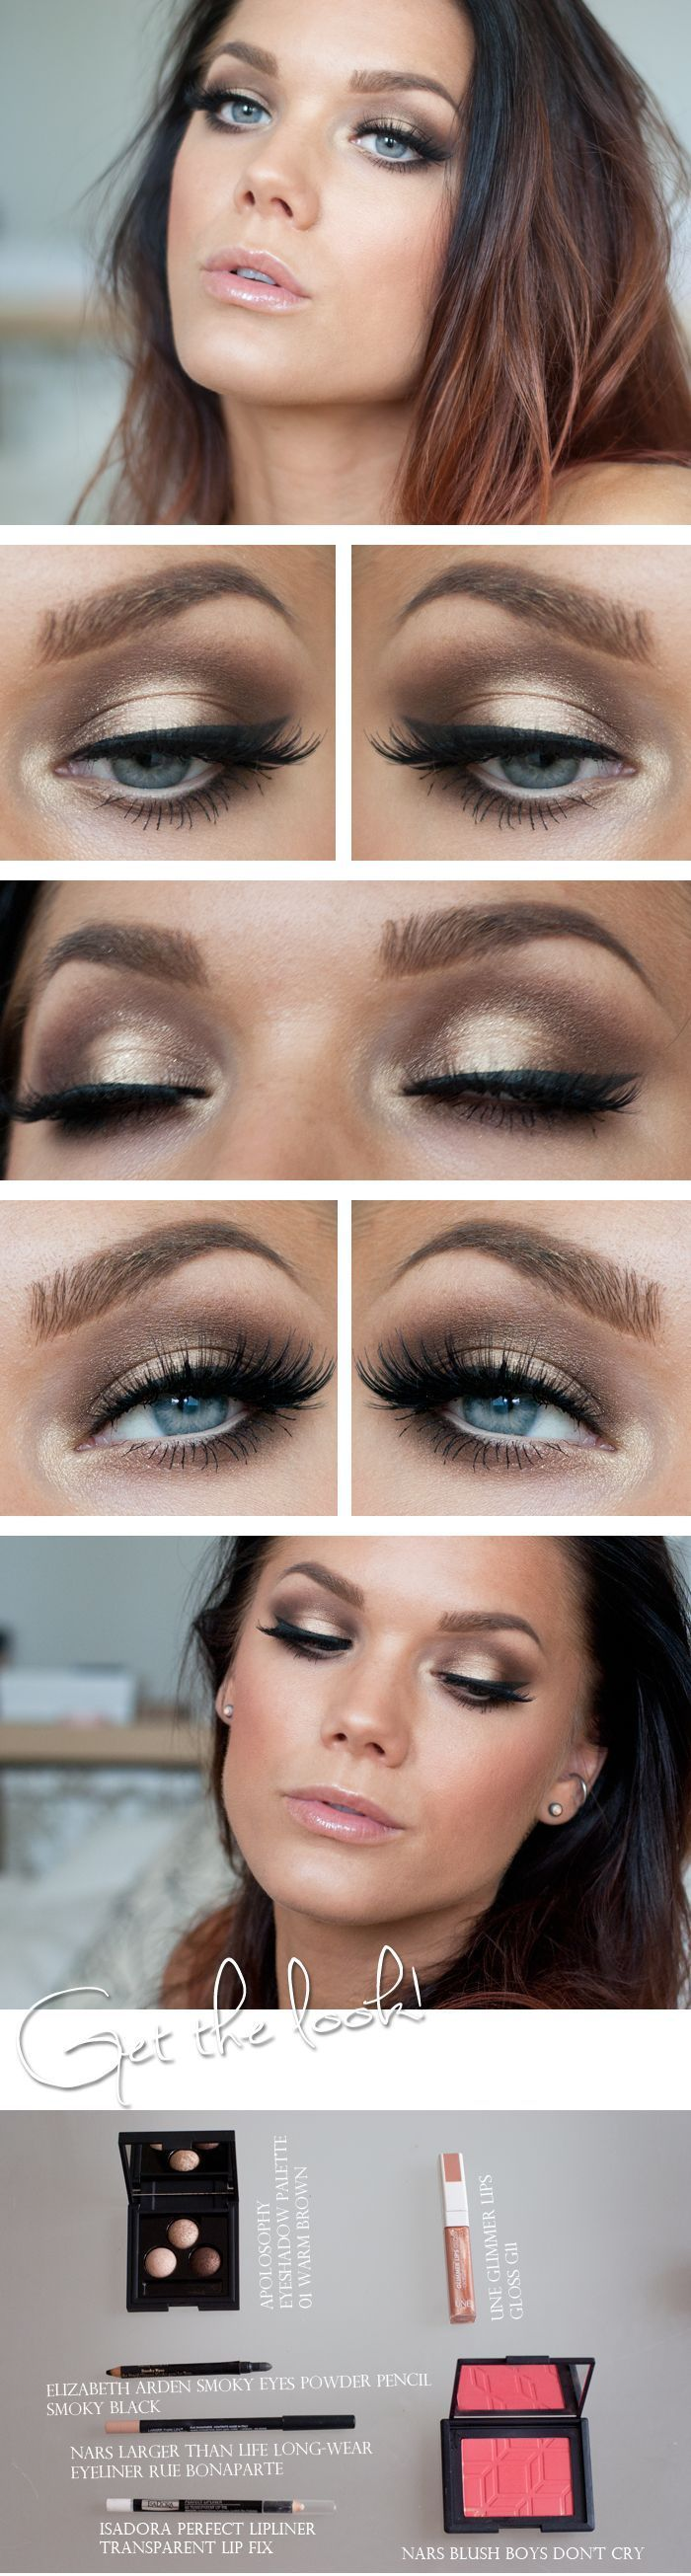 Smoky gold - can't figure out where to buy that eye palette, but still like the look